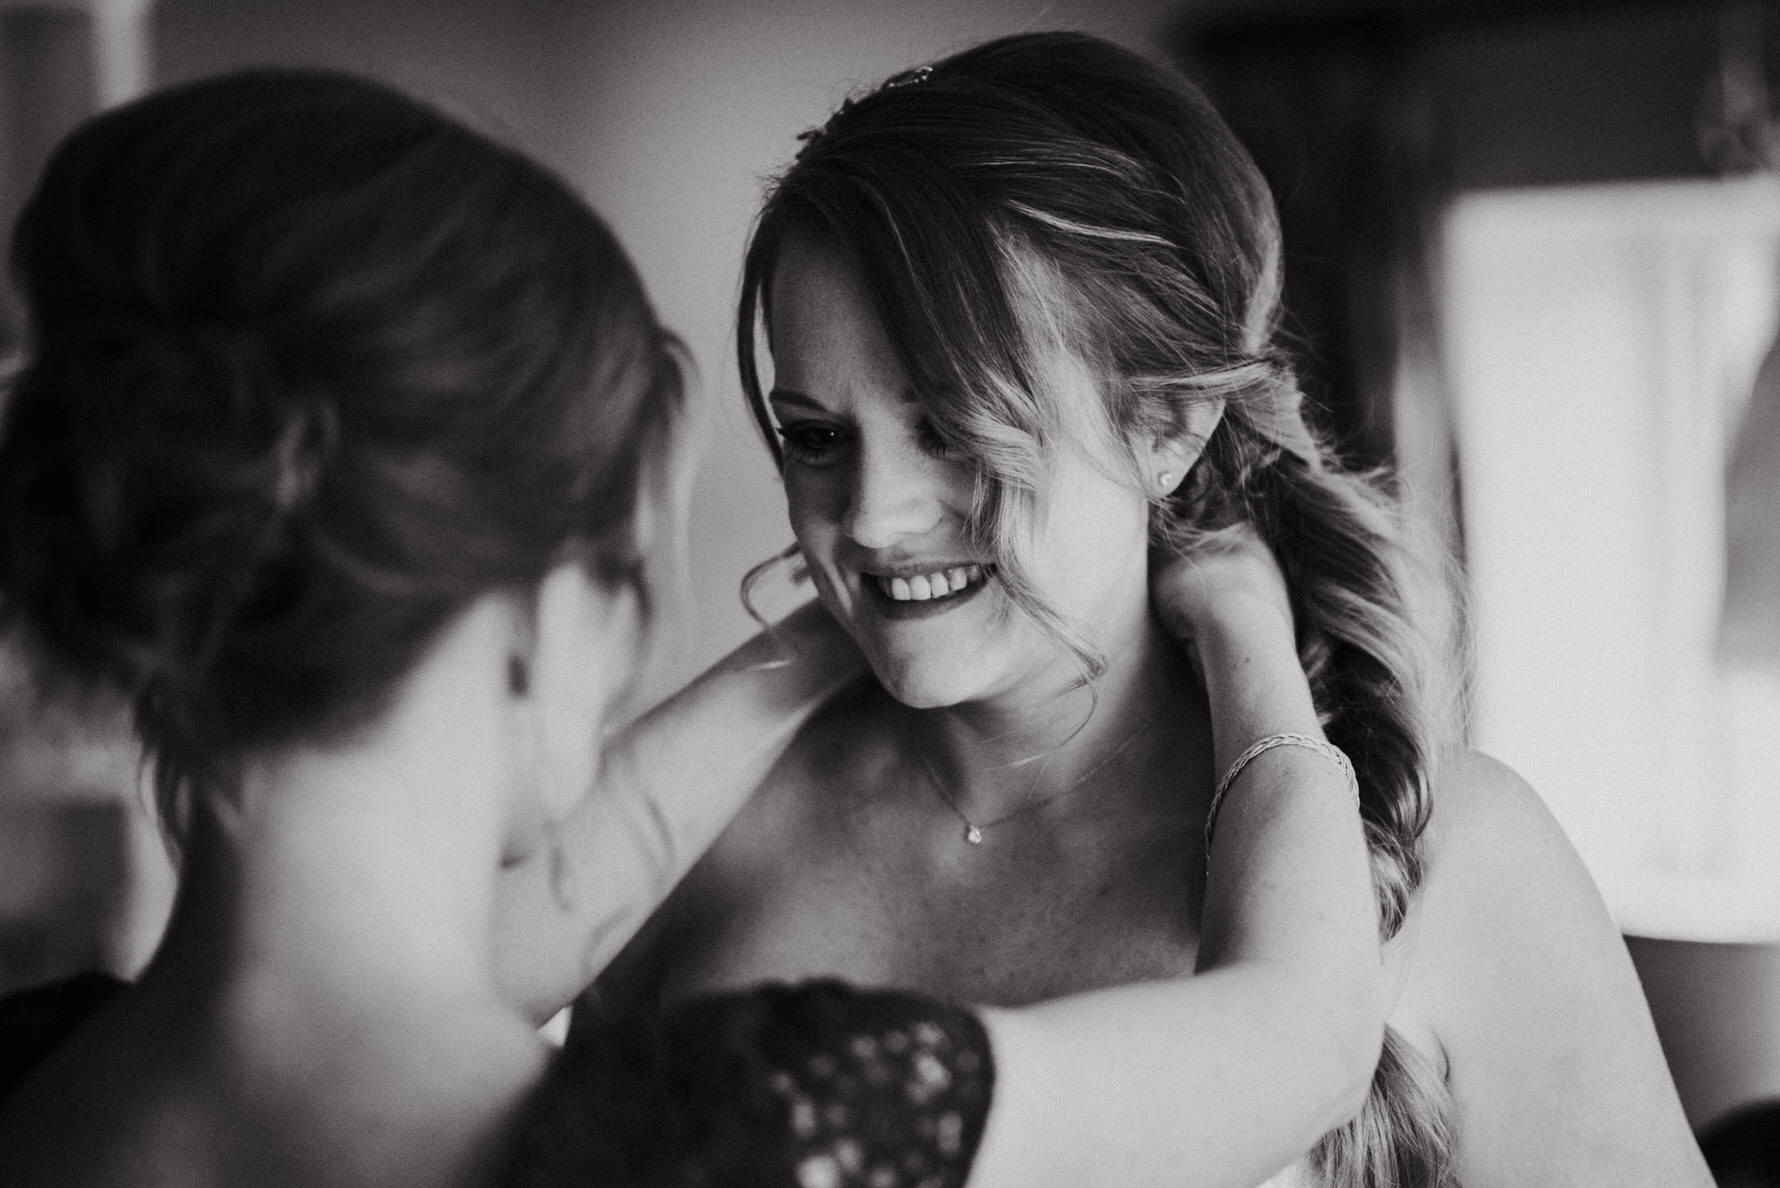 Documentary Wedding Photography - a bridesmaid helping the bride with her necklace